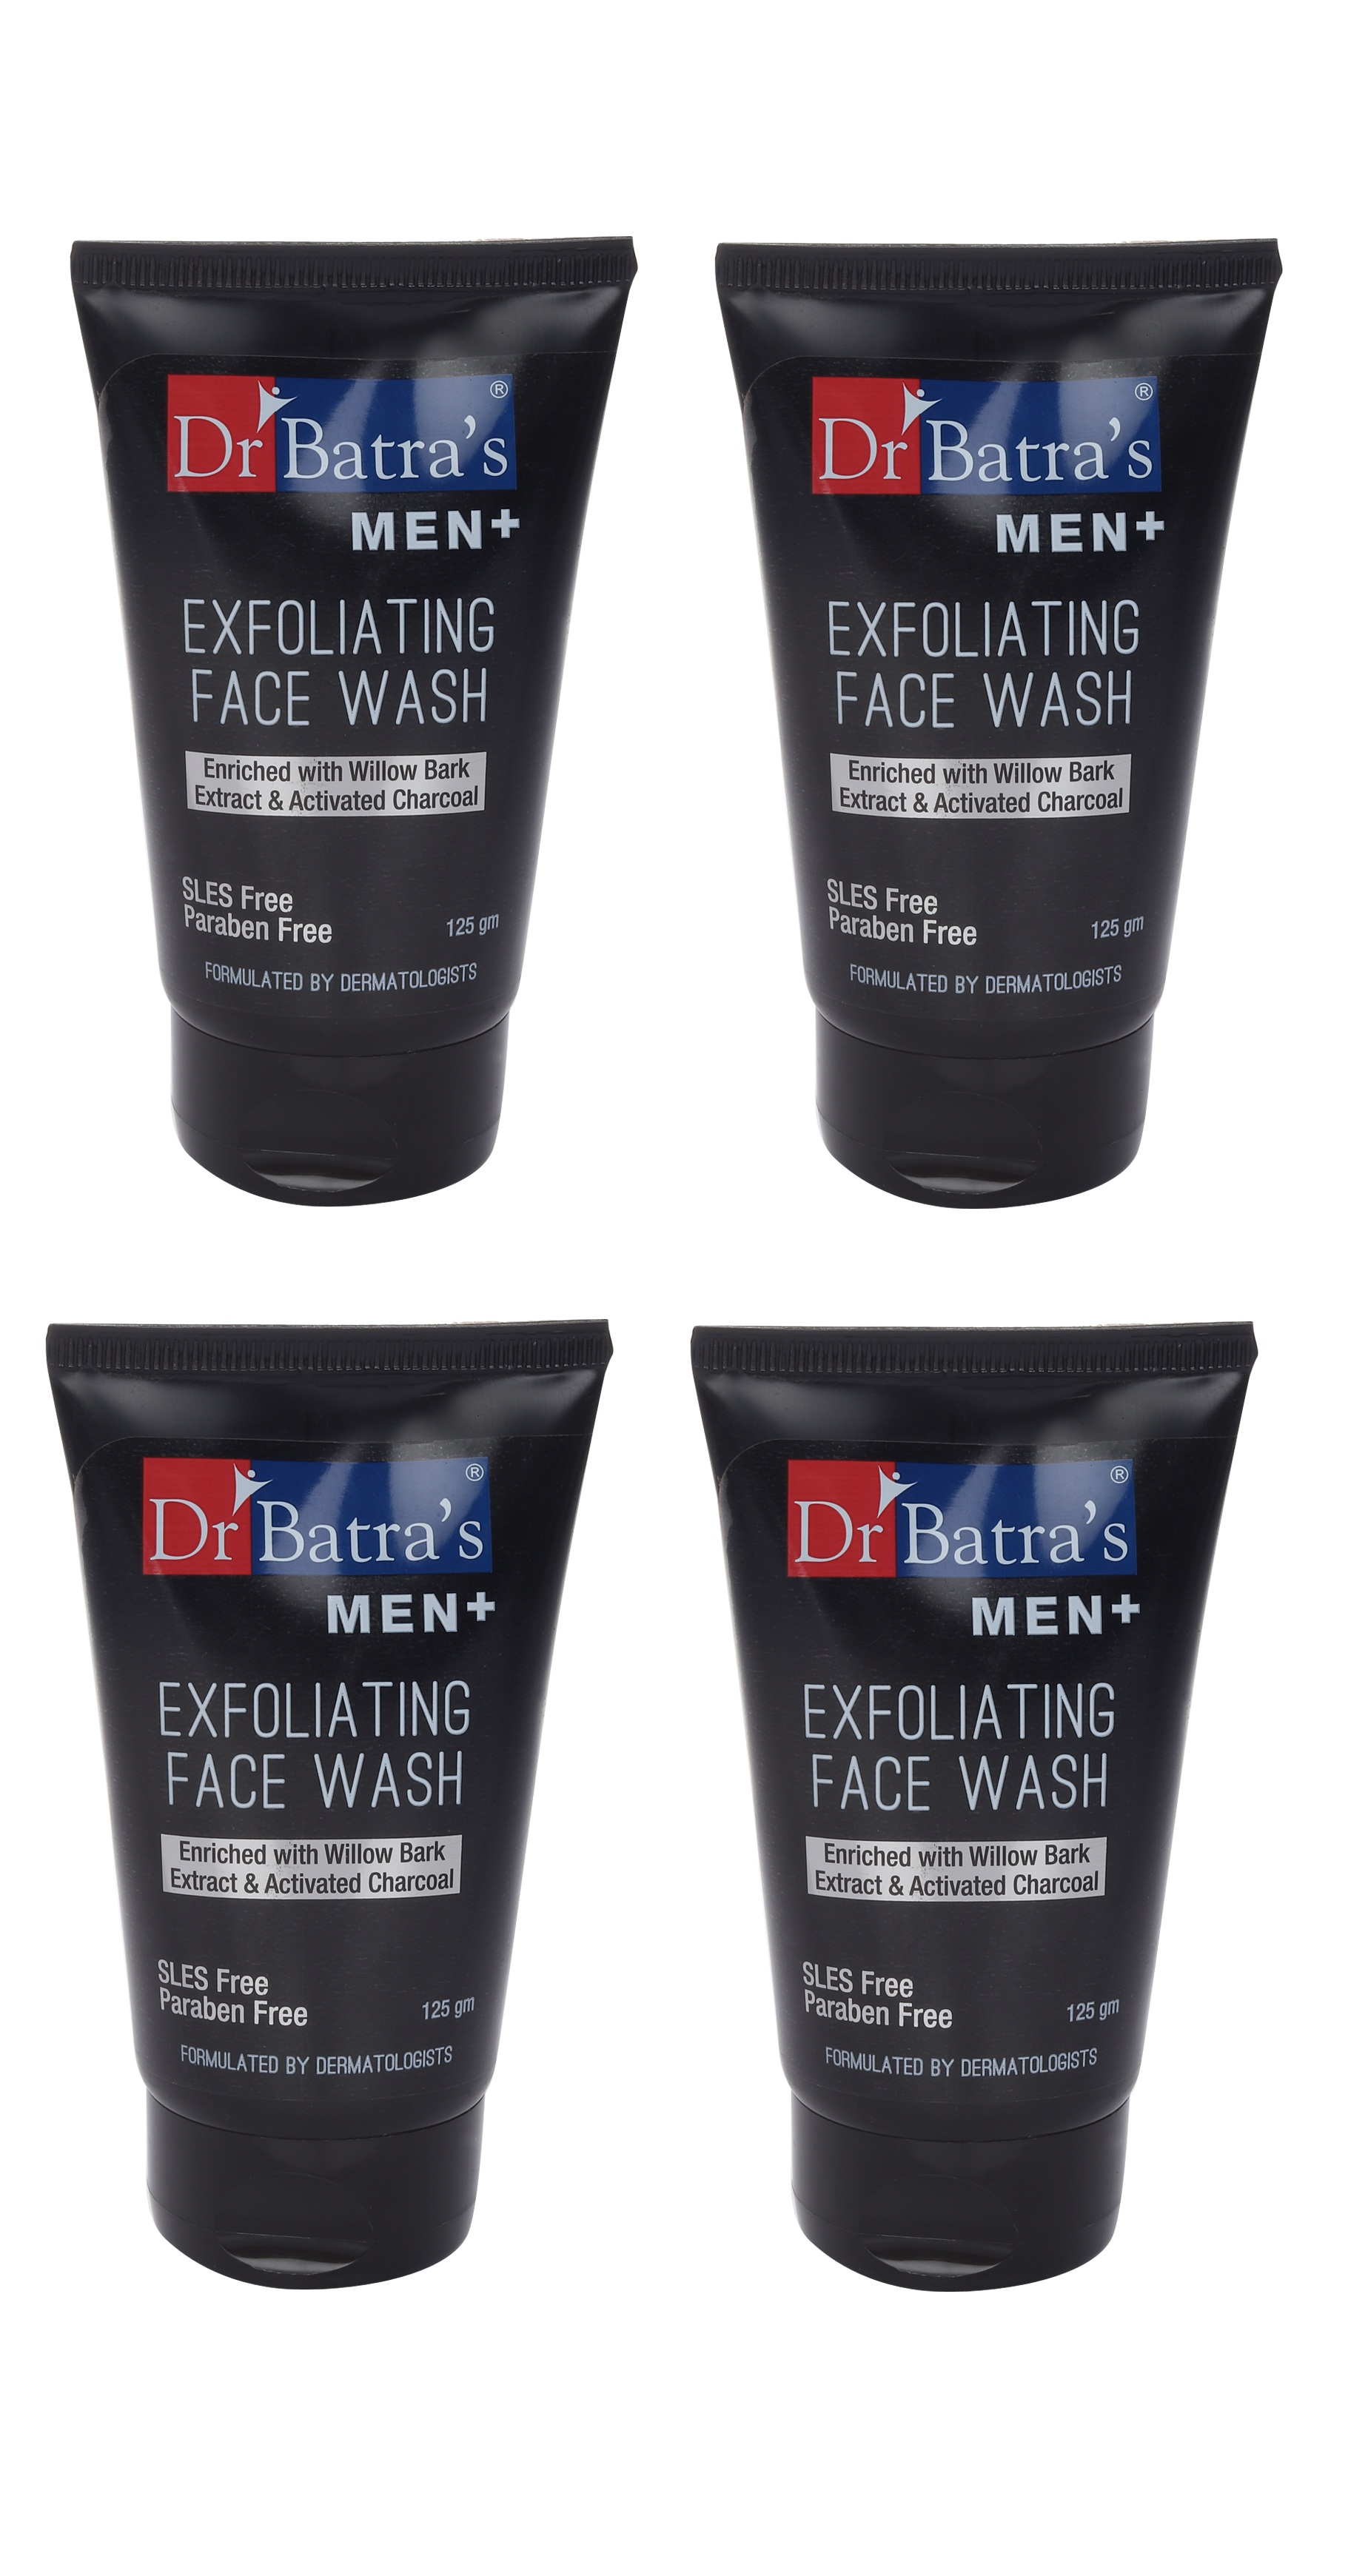 Dr Batra's | Dr Batra's Men+ Exfoliating Face Wash Enriched With Willow Black Extract & Activated Charcoal - 125 ml (Pack of 4)